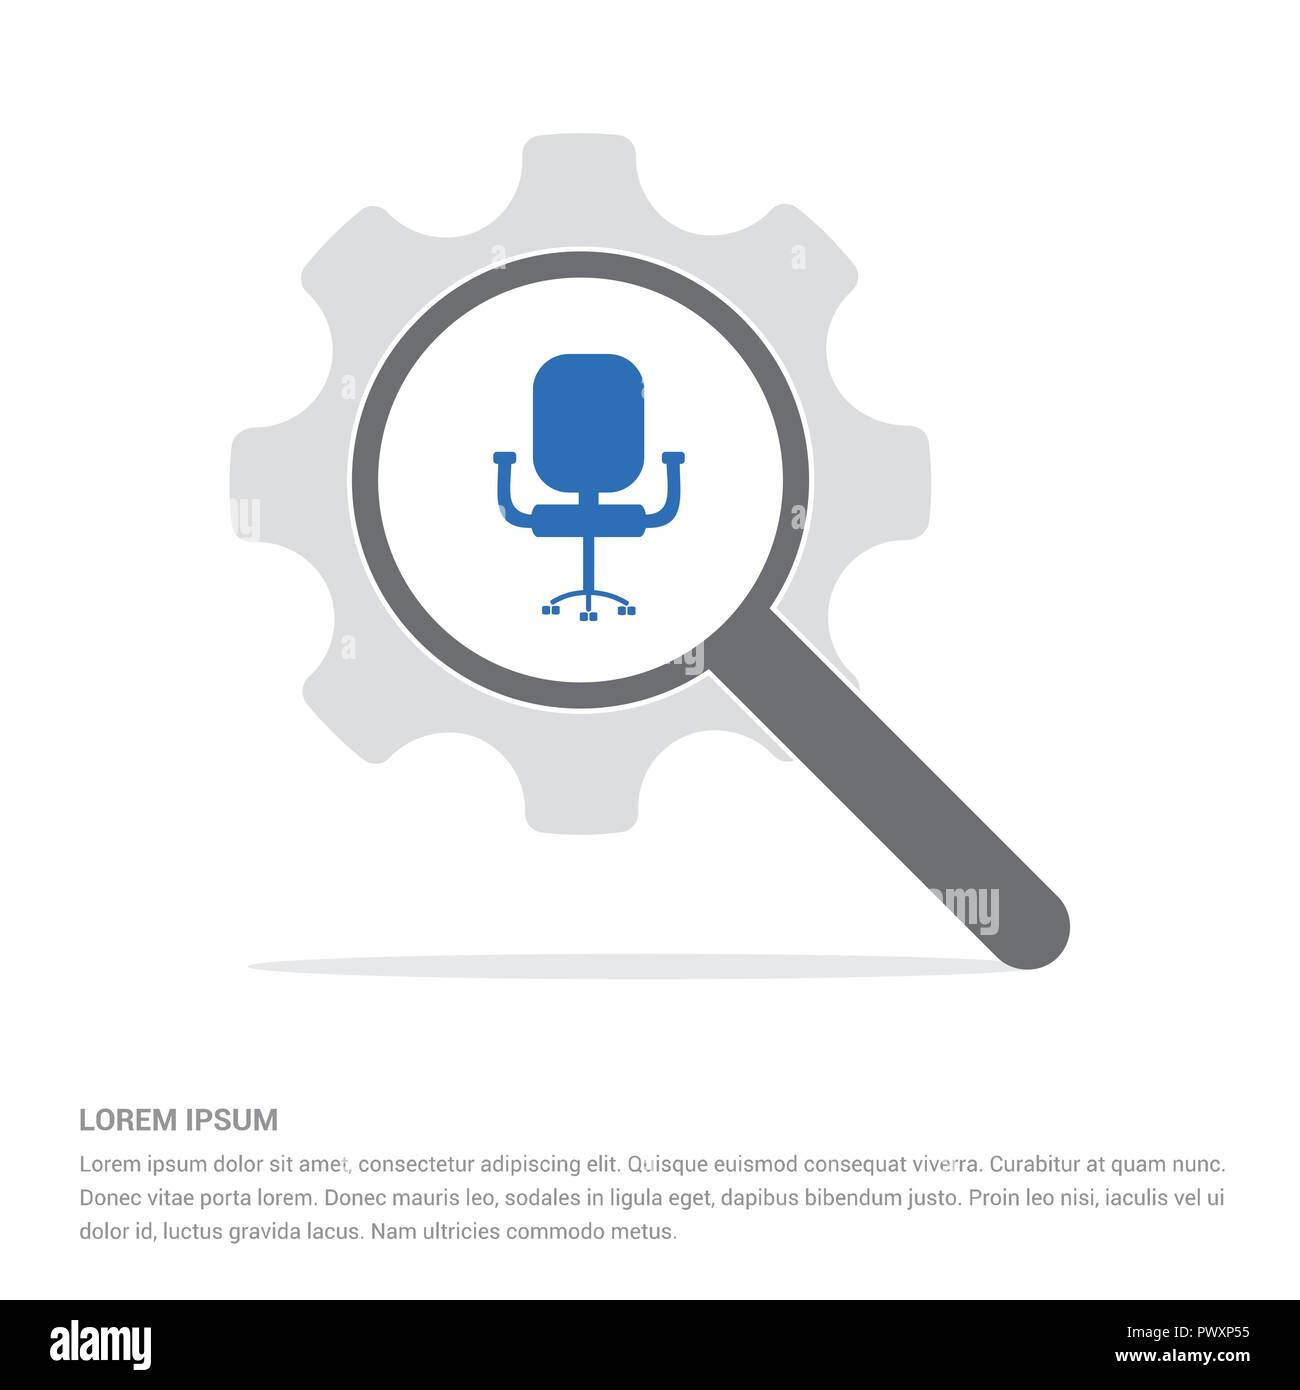 office chair icon free vector icon stock vector art illustration rh alamy com Icon Office Chair No Backgroujd Office Chair Symbol